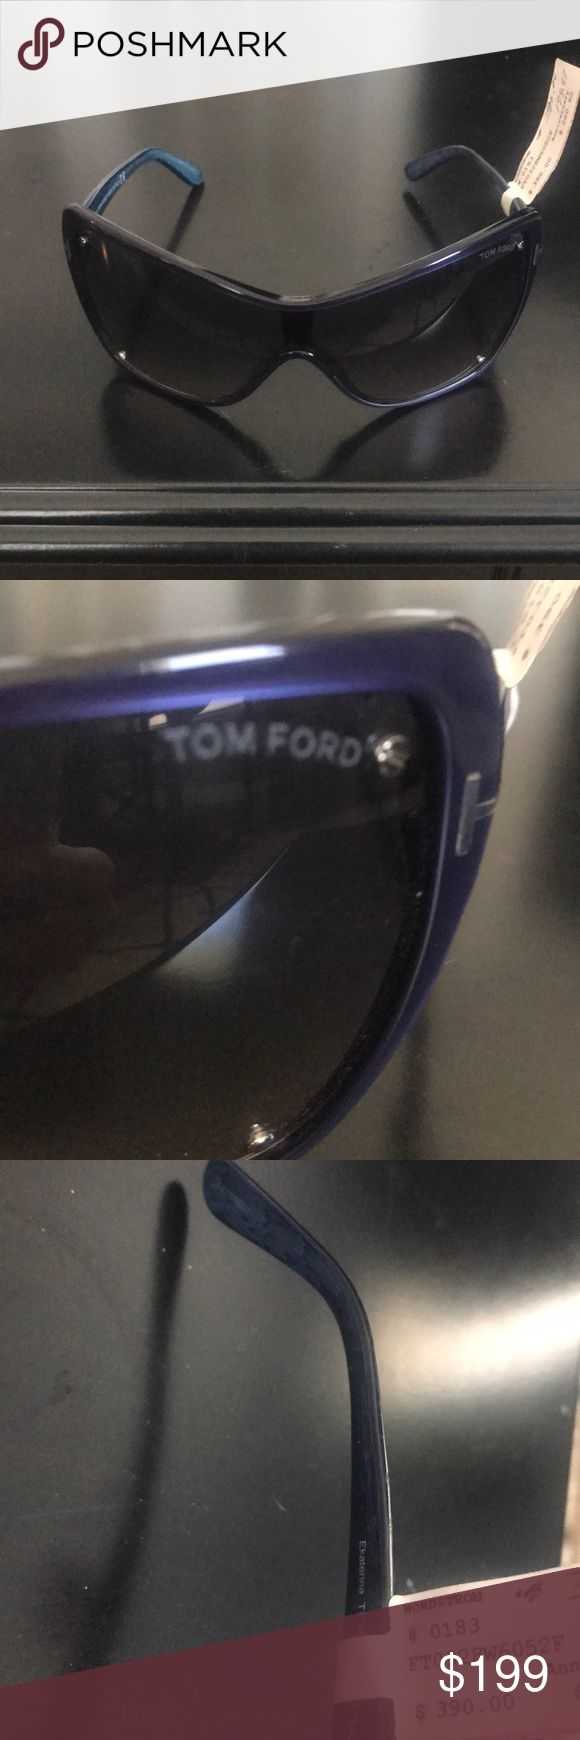 Authentic Tom Ford Women's Sunglasses NWT Authentic Tom Ford Women's Sunglasses New With Tag  Color; Blue. Tom Ford Accessories Sunglasses